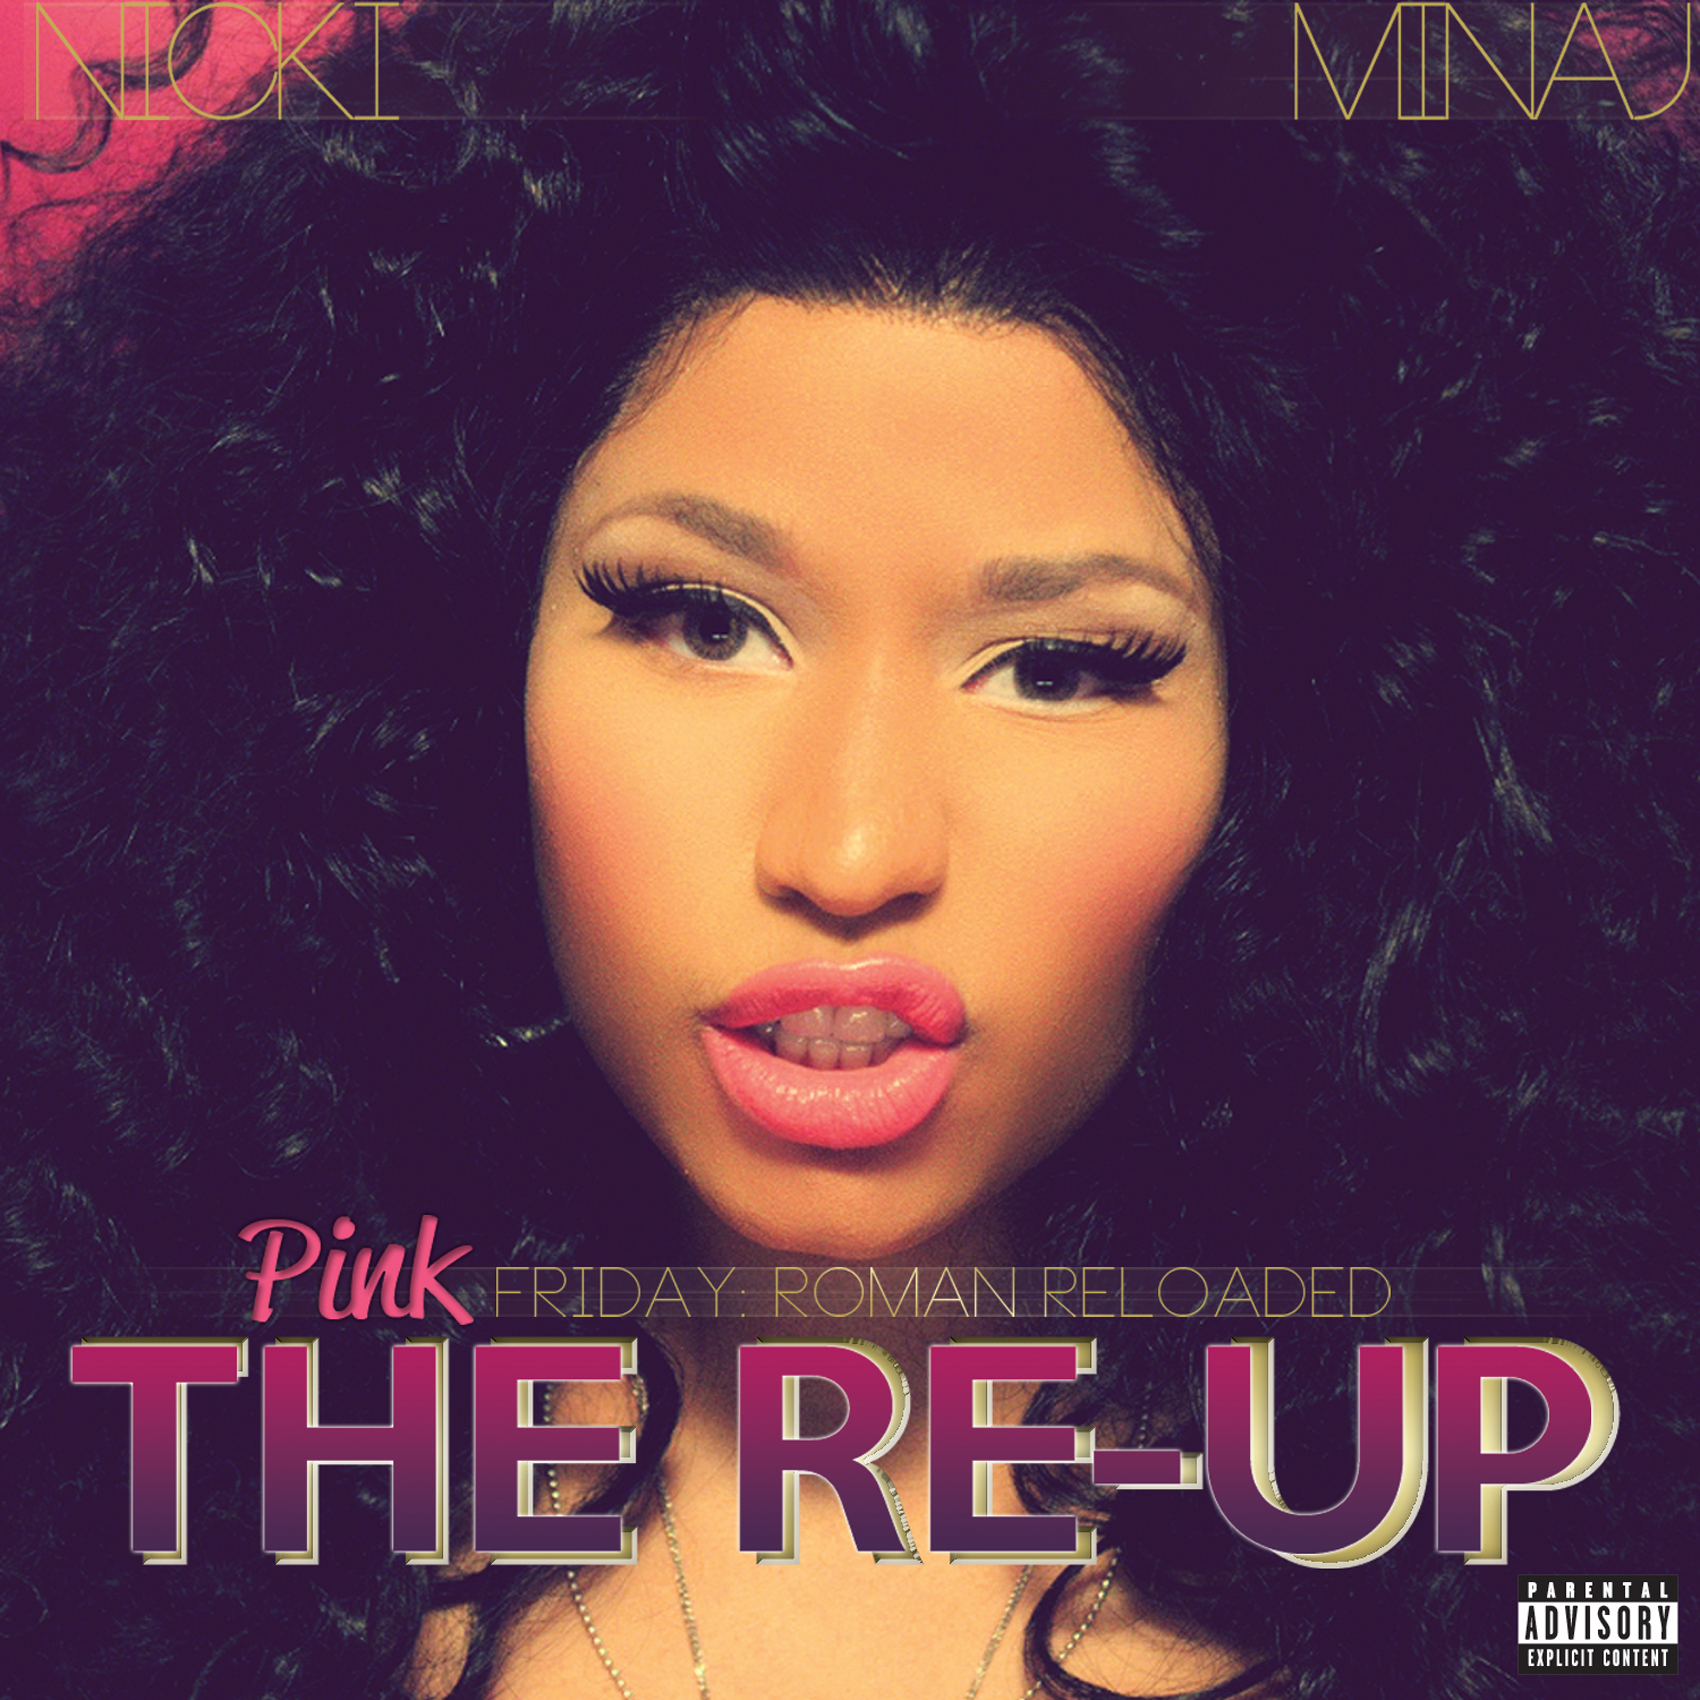 nicki minaj roman reloaded the re-up